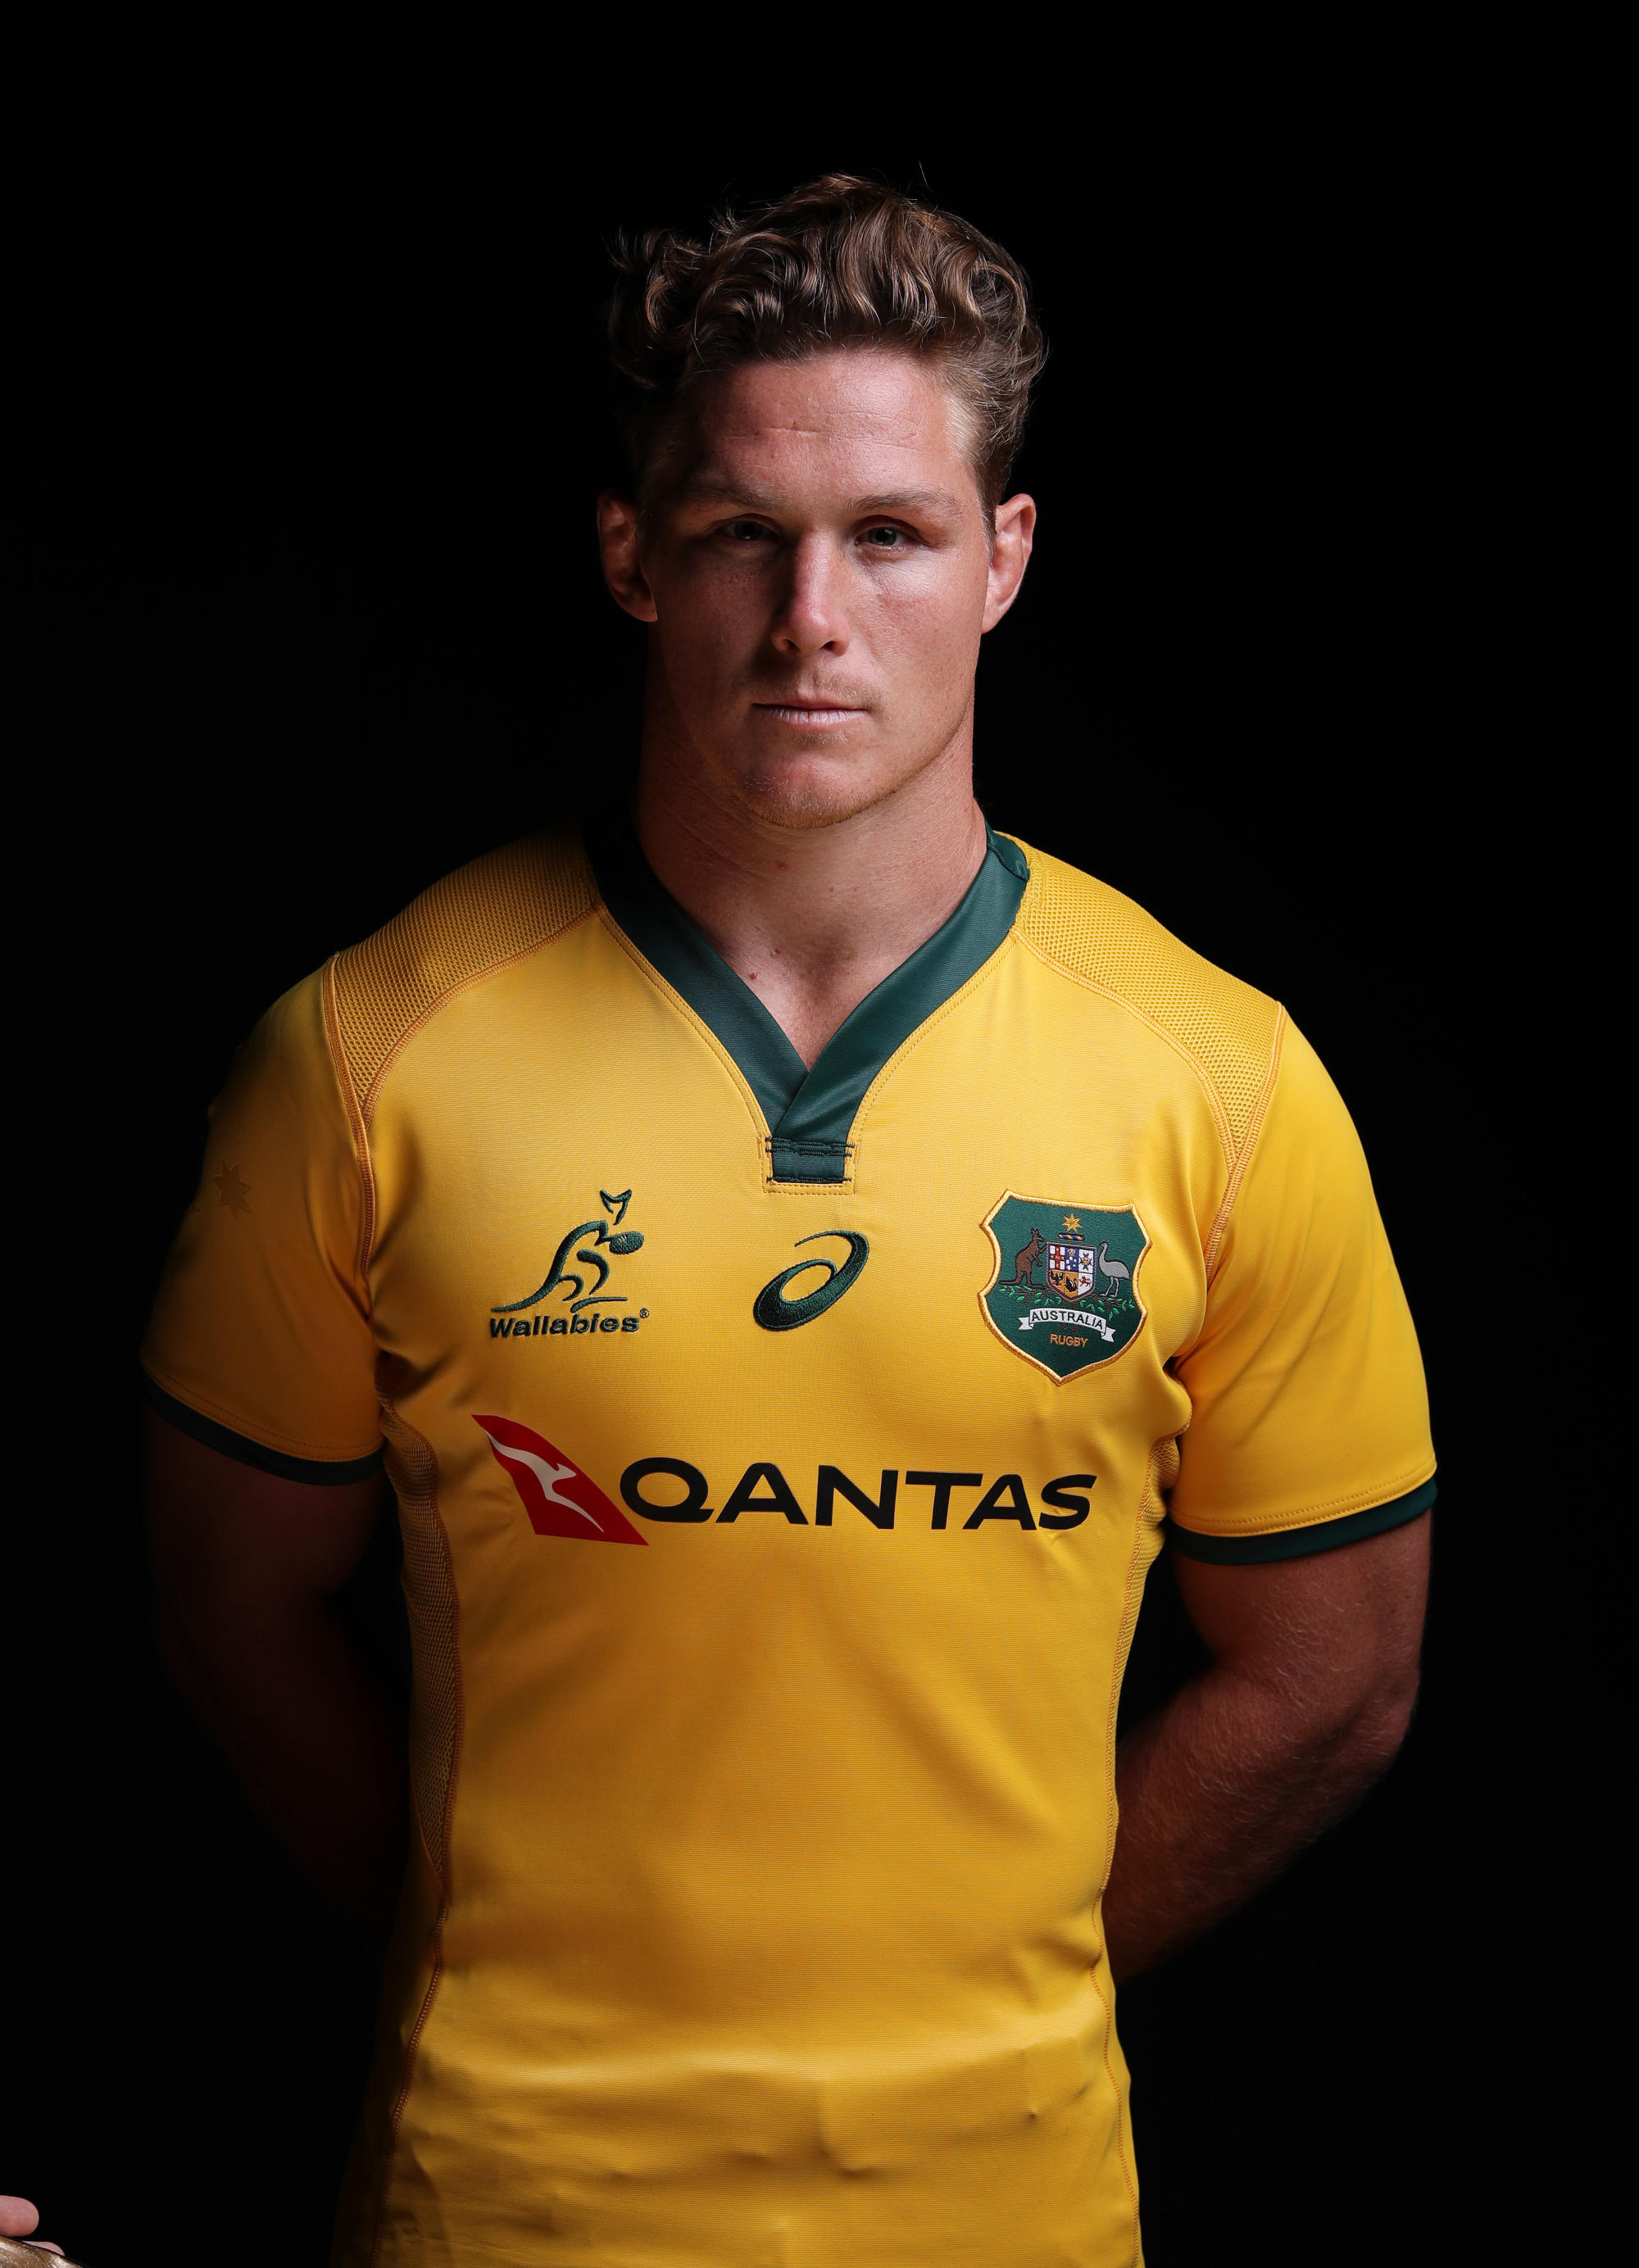 cb57d76daee Rugby Australia bring back the retro look for 2018 with new ...